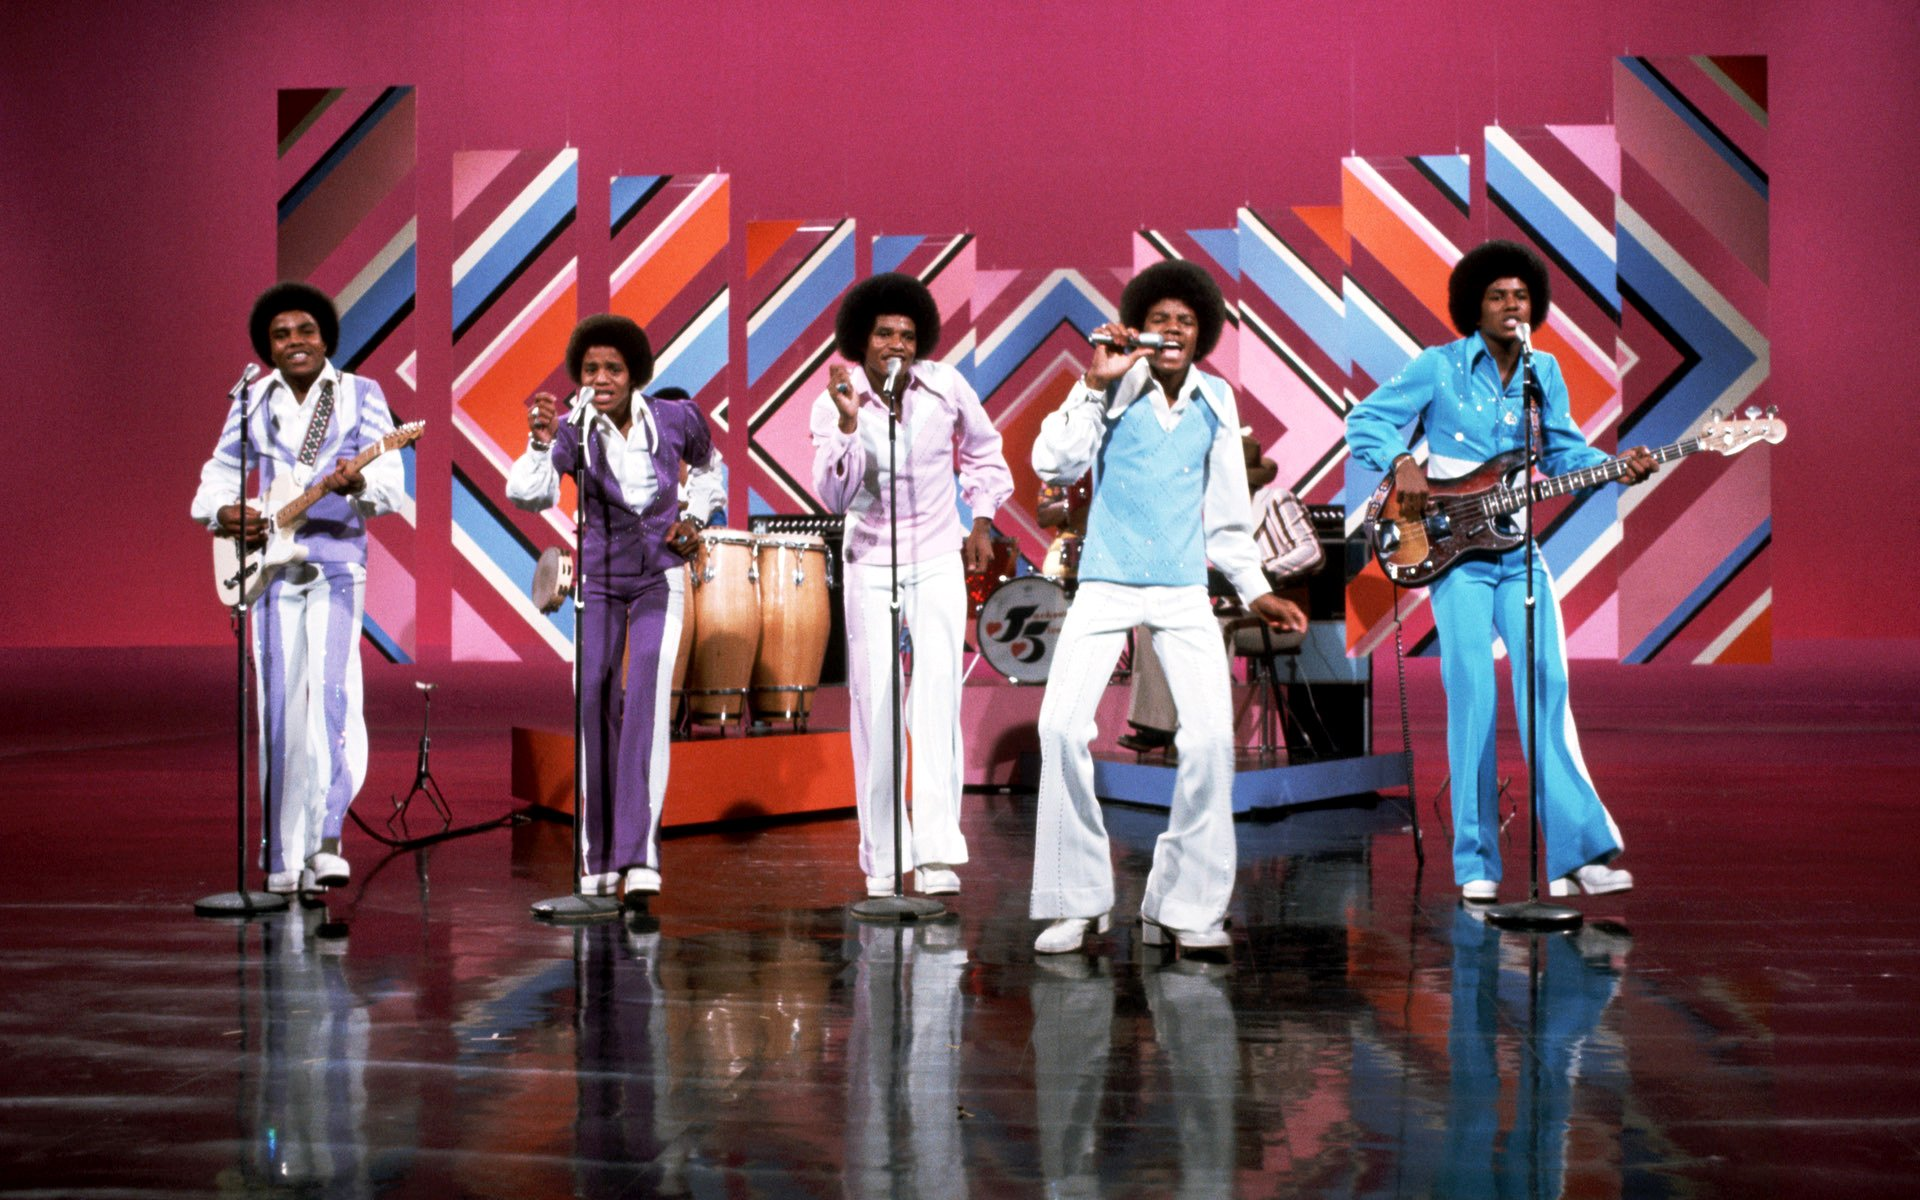 The jackson 5 full hd wallpaper and background image for Jackson galaxy band